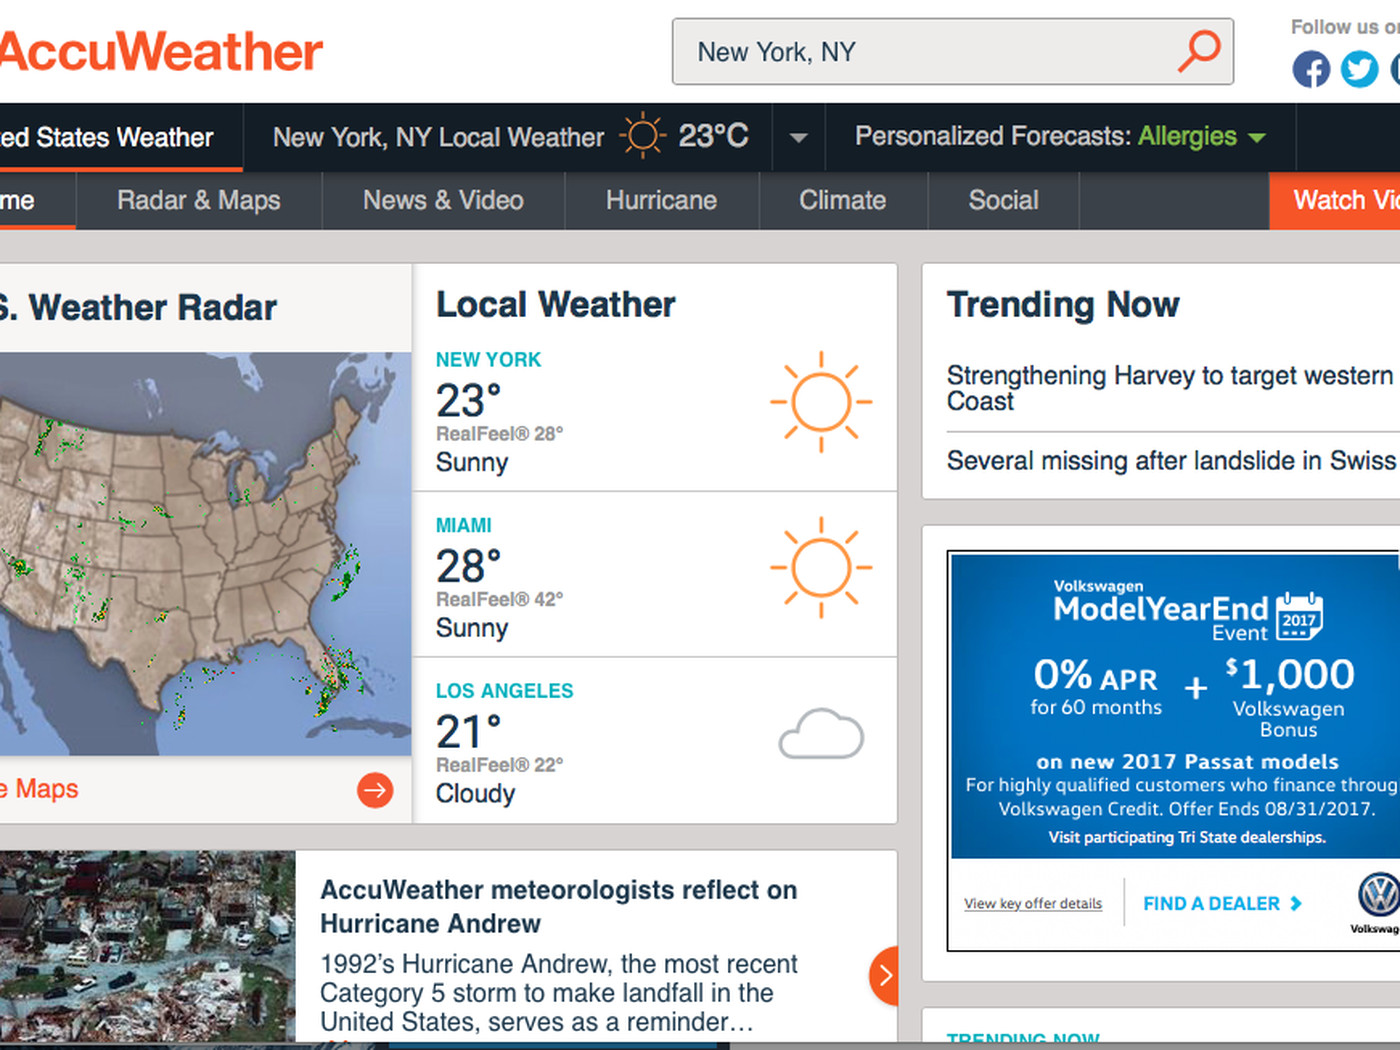 AccuWeather deflects blame after selling users' data, even if they